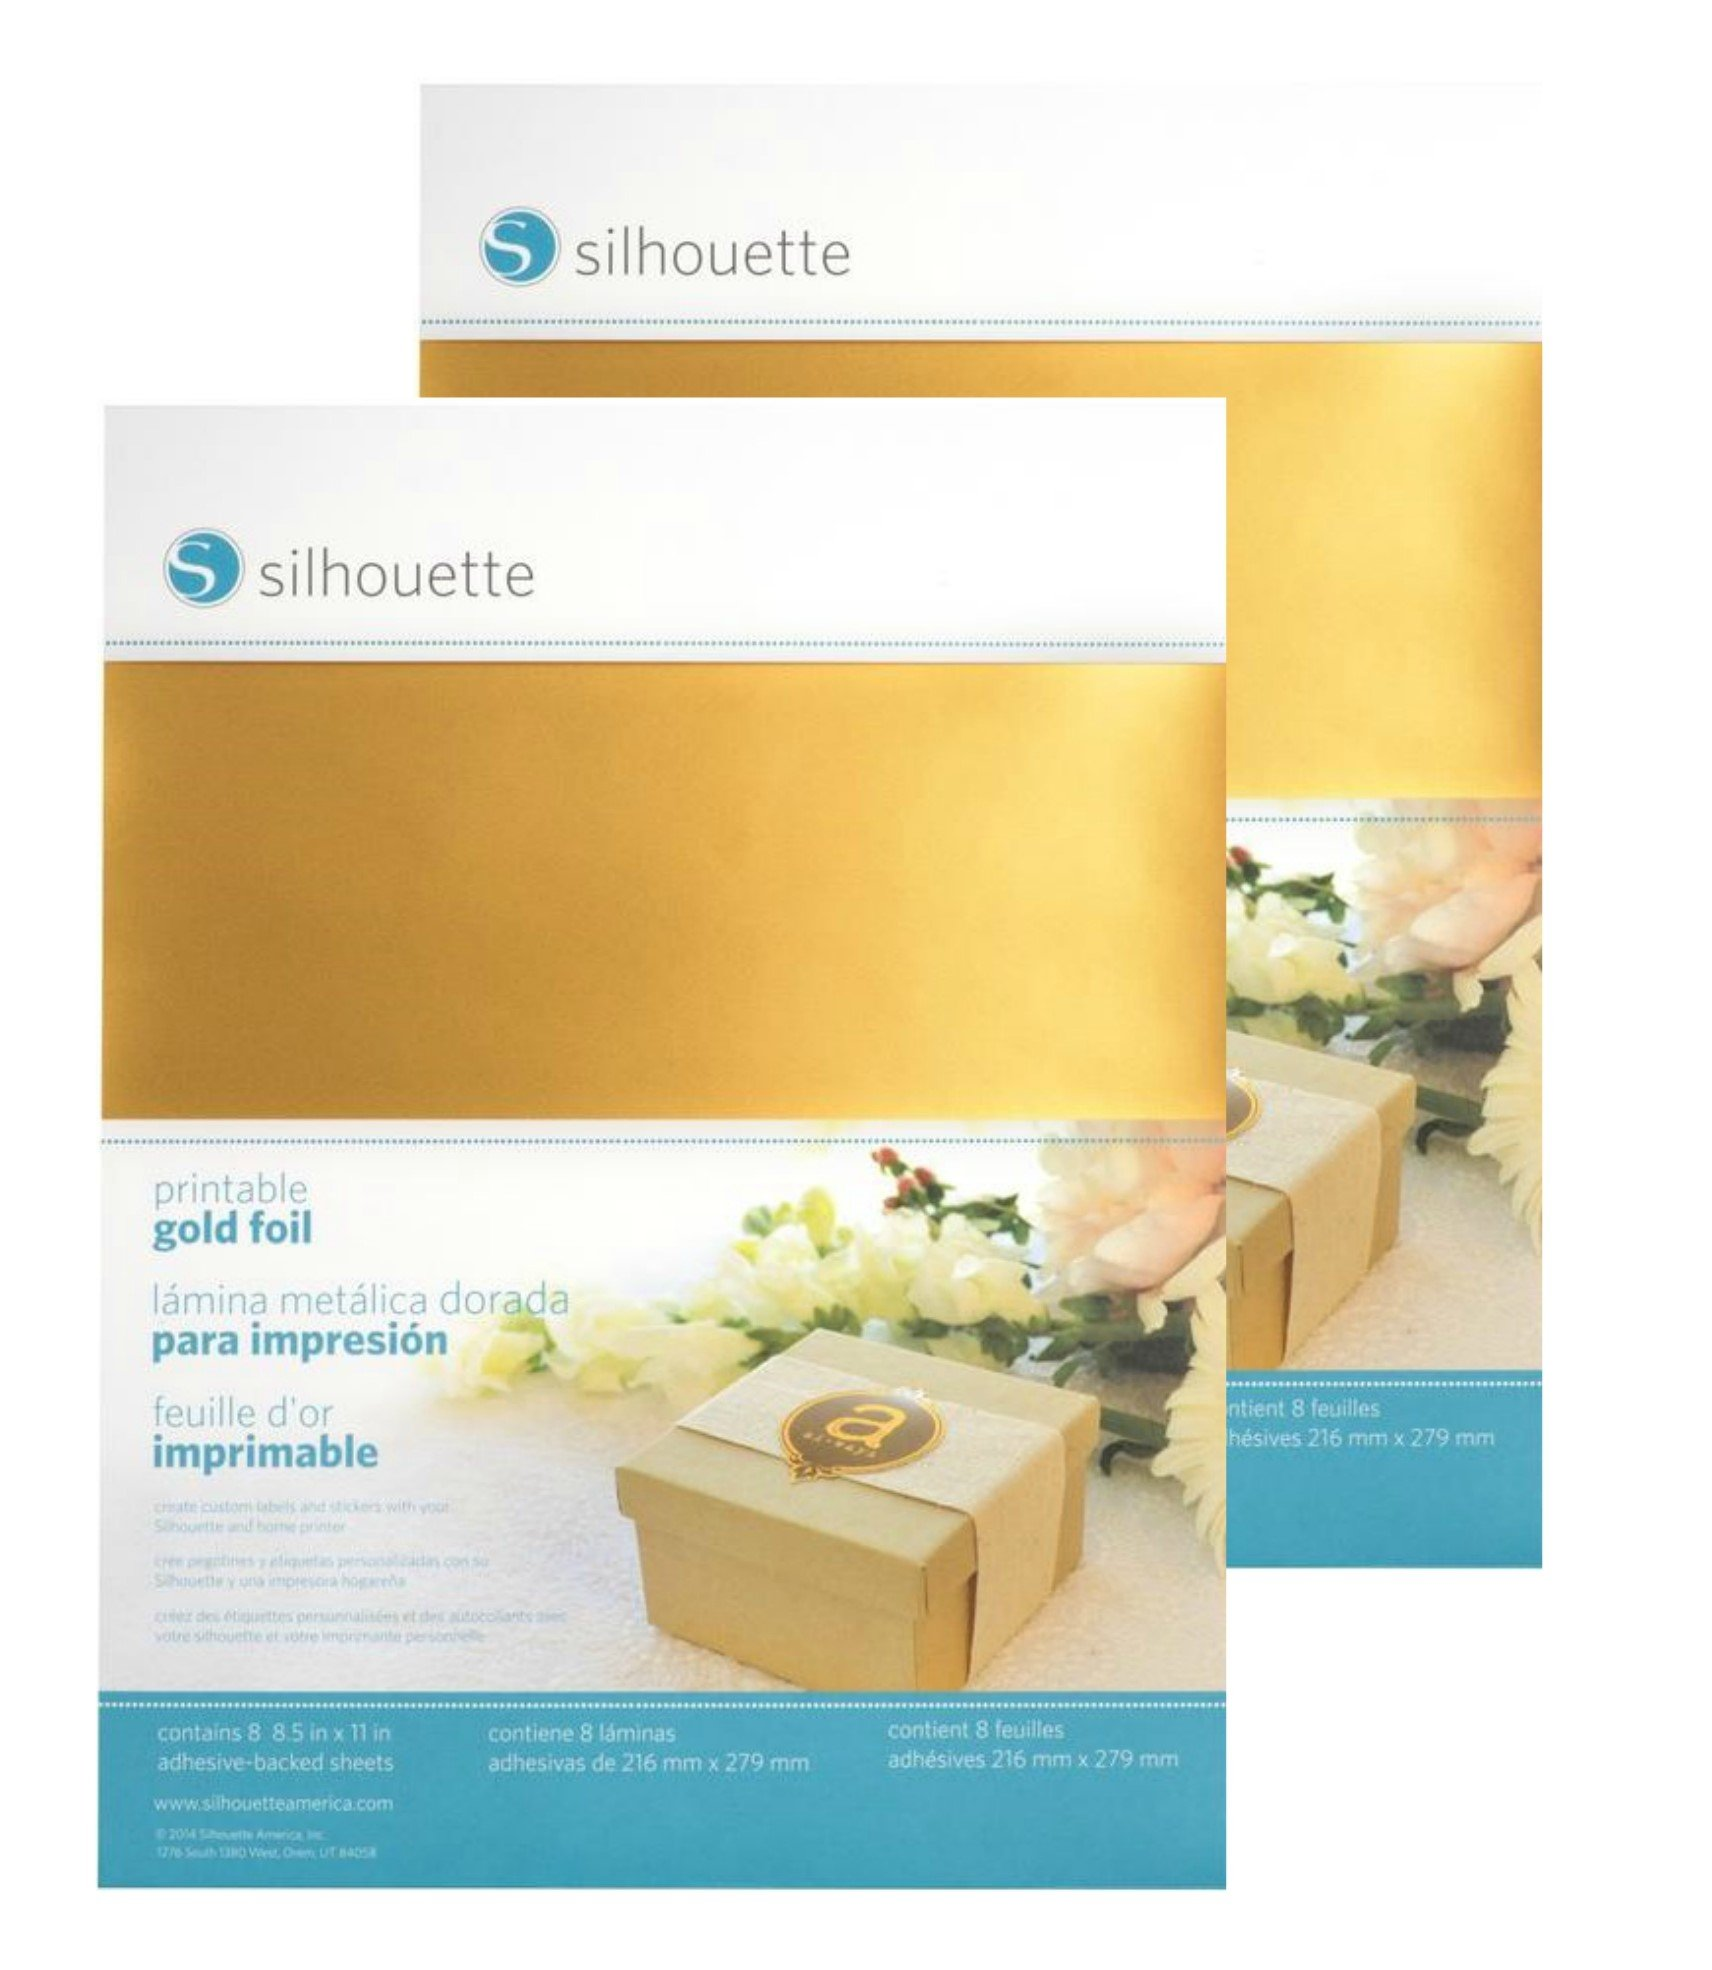 Silhouette Printable Gold Foil - 2 Pack by Silhouette